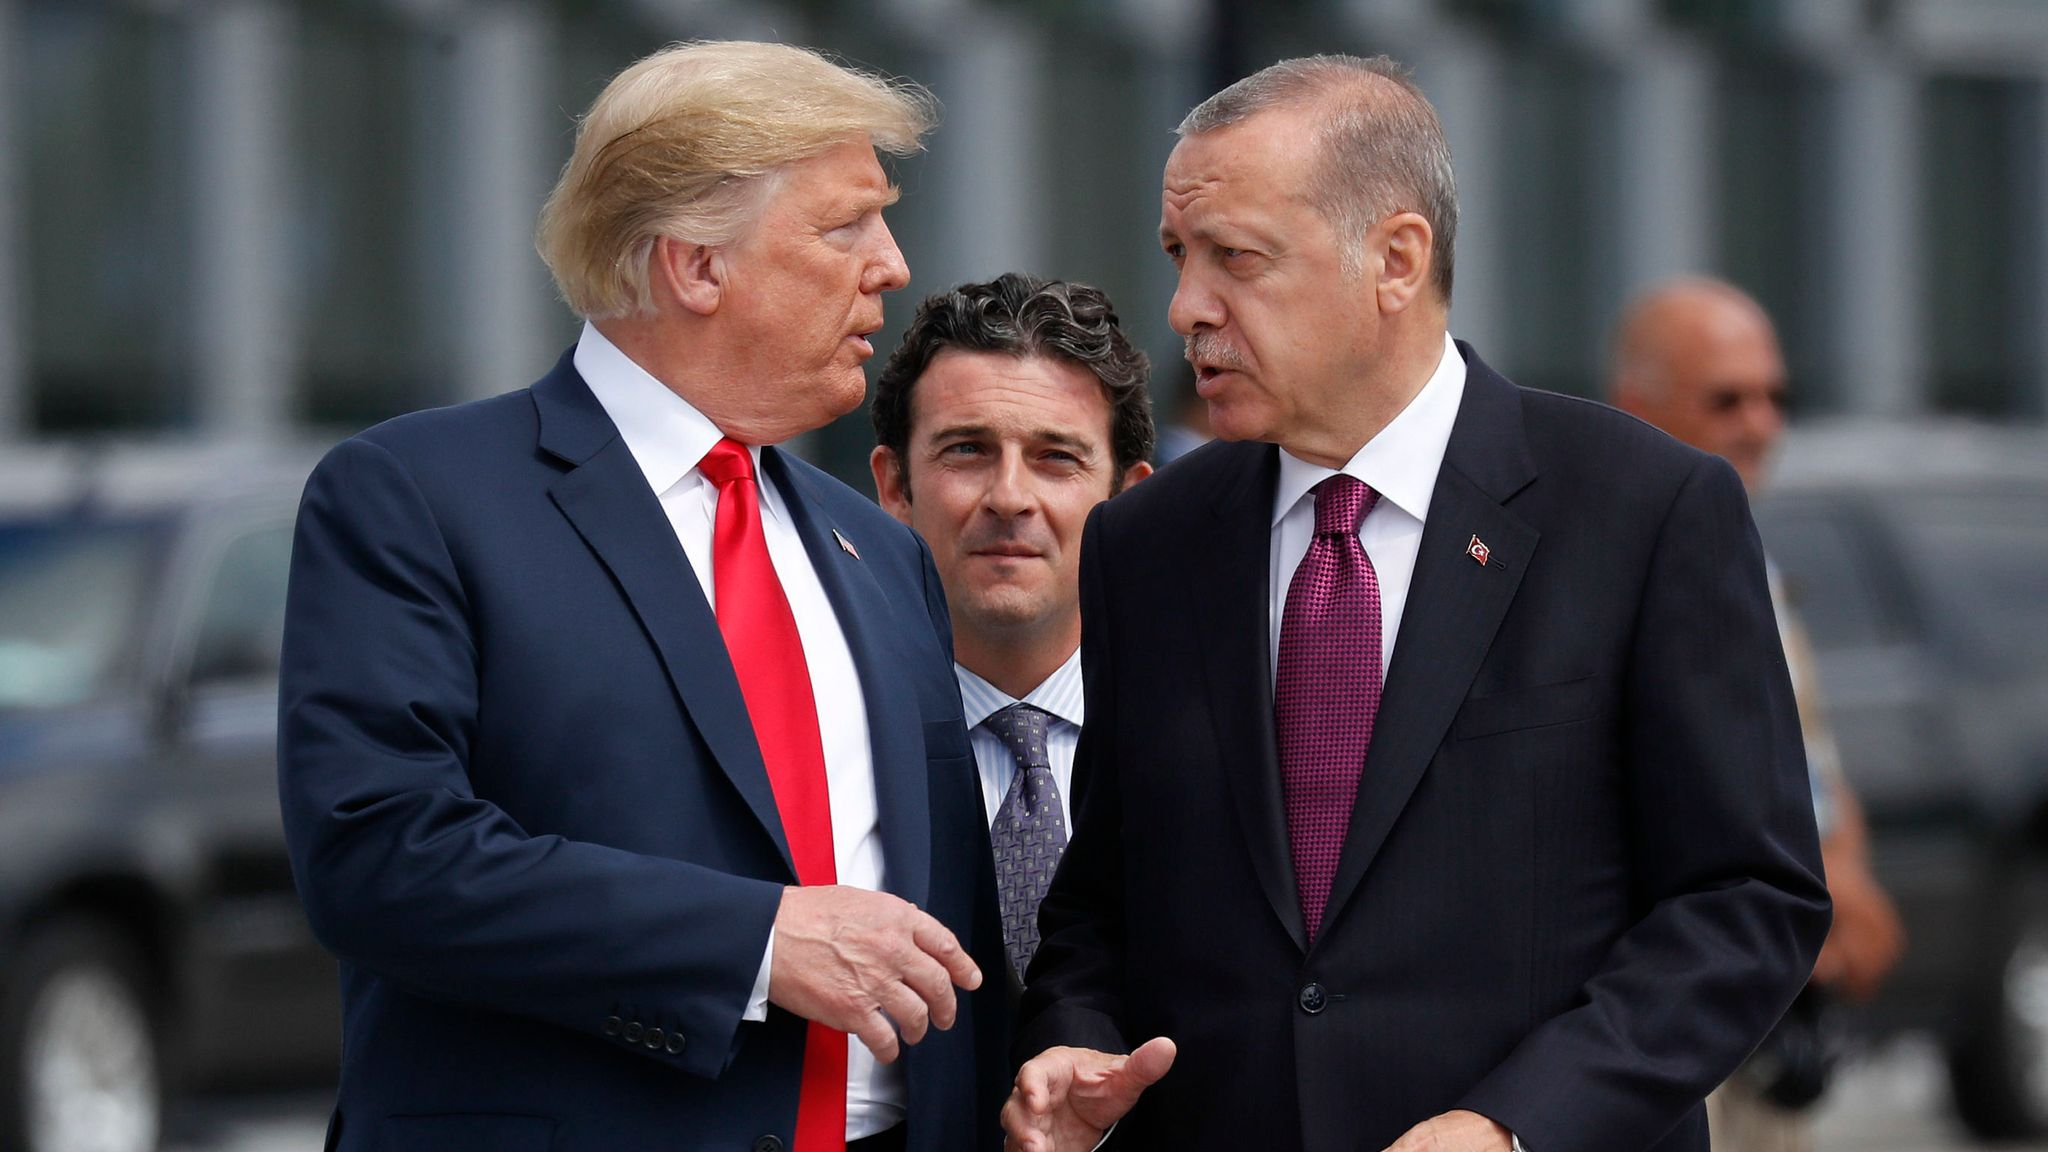 Turkey will resume northeast Syria operation if US does not keep promises